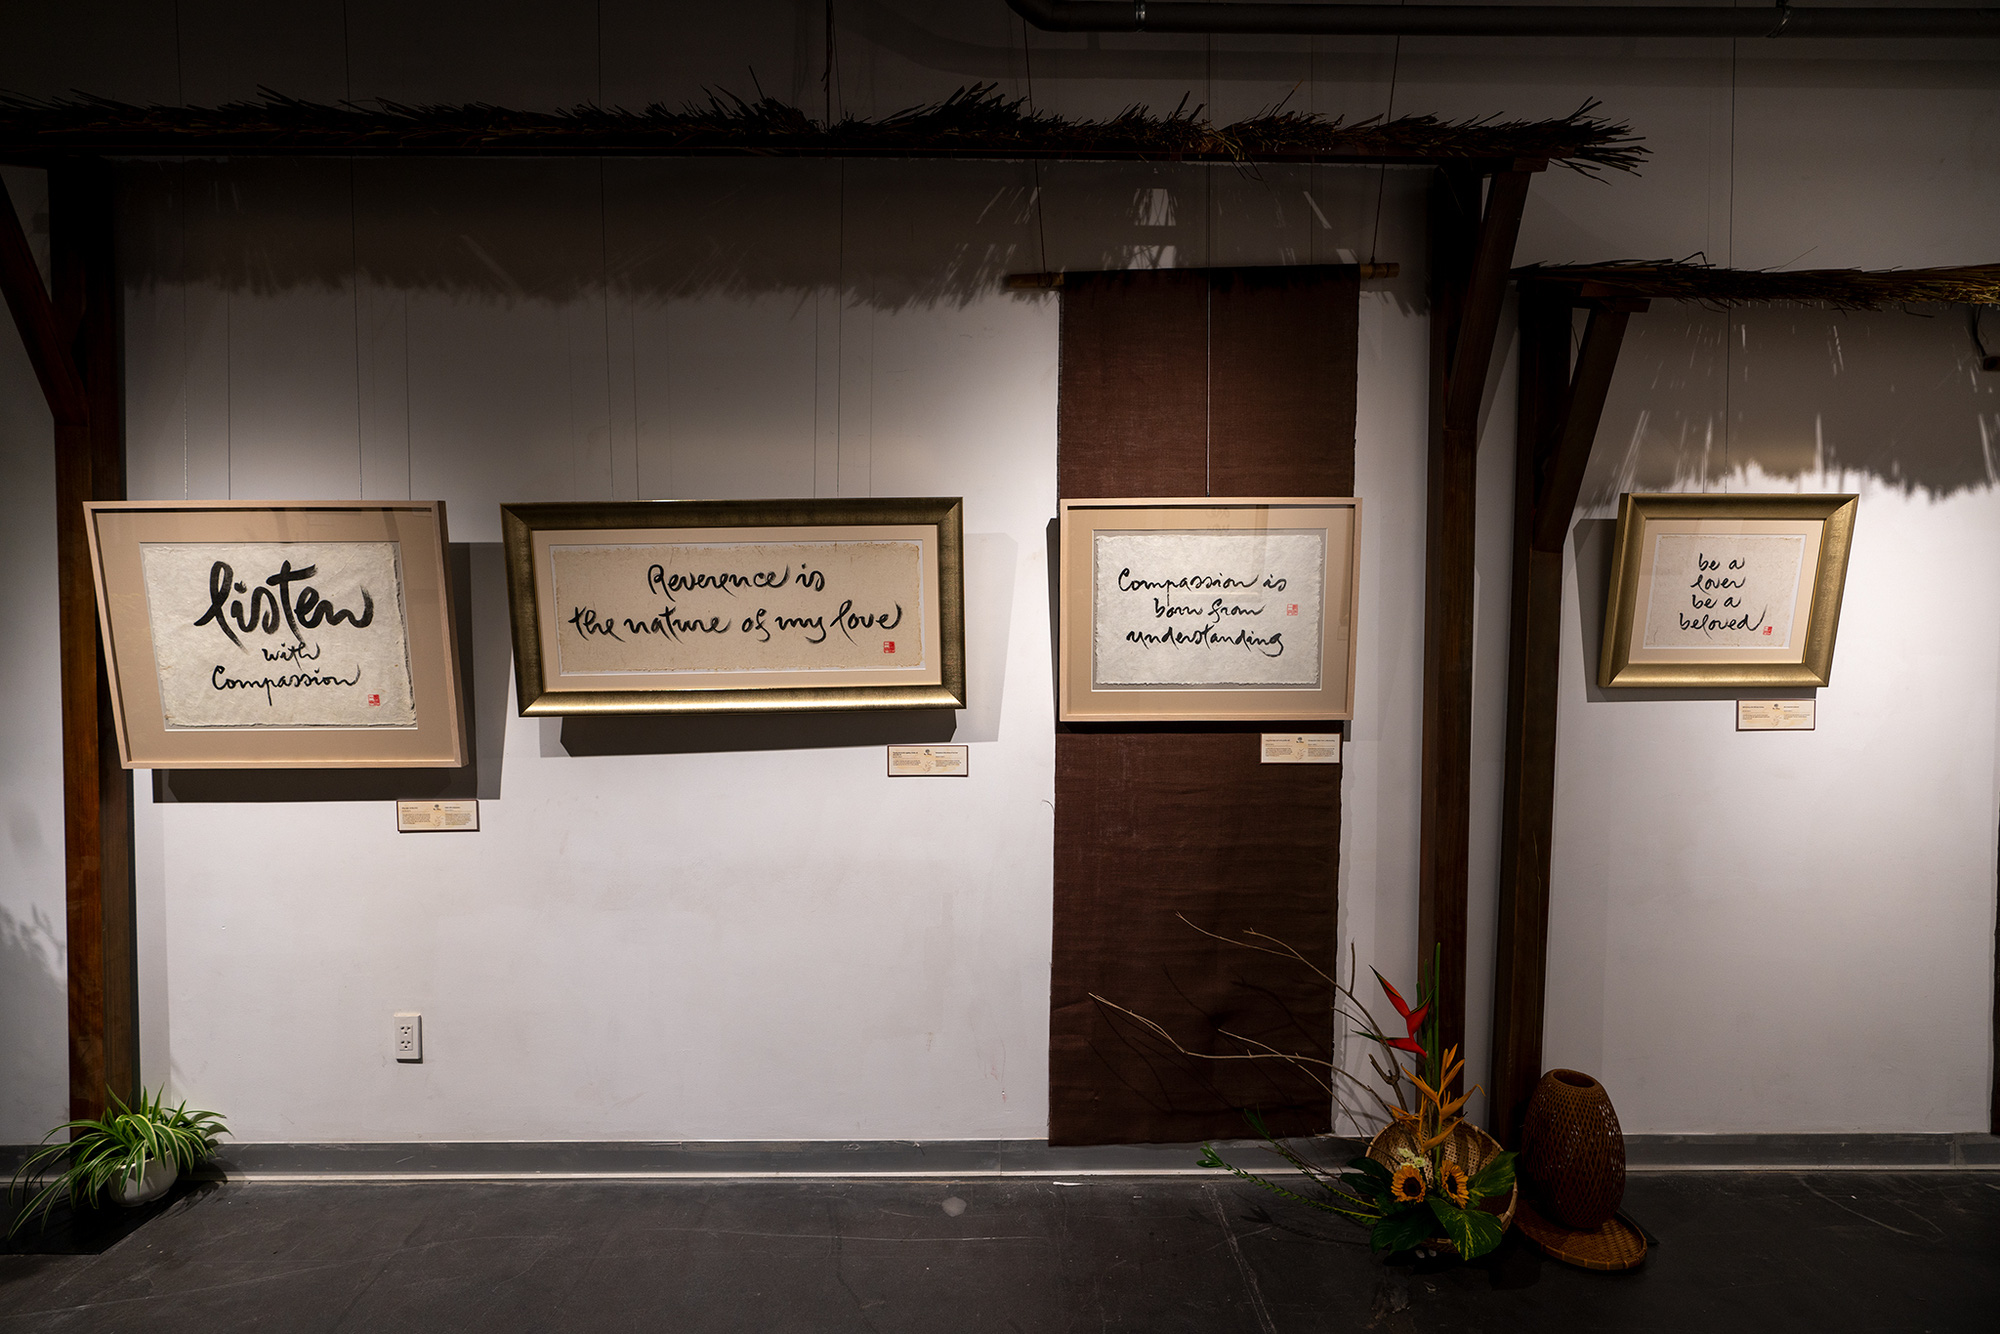 Calligraphy by Vietnamese Zen Buddhist monk Thich Nhat Hanh is on display in Ho Chi Minh City, Vietnam, March 27, 2021. Photo: Huu Hanh / Tuoi Tre